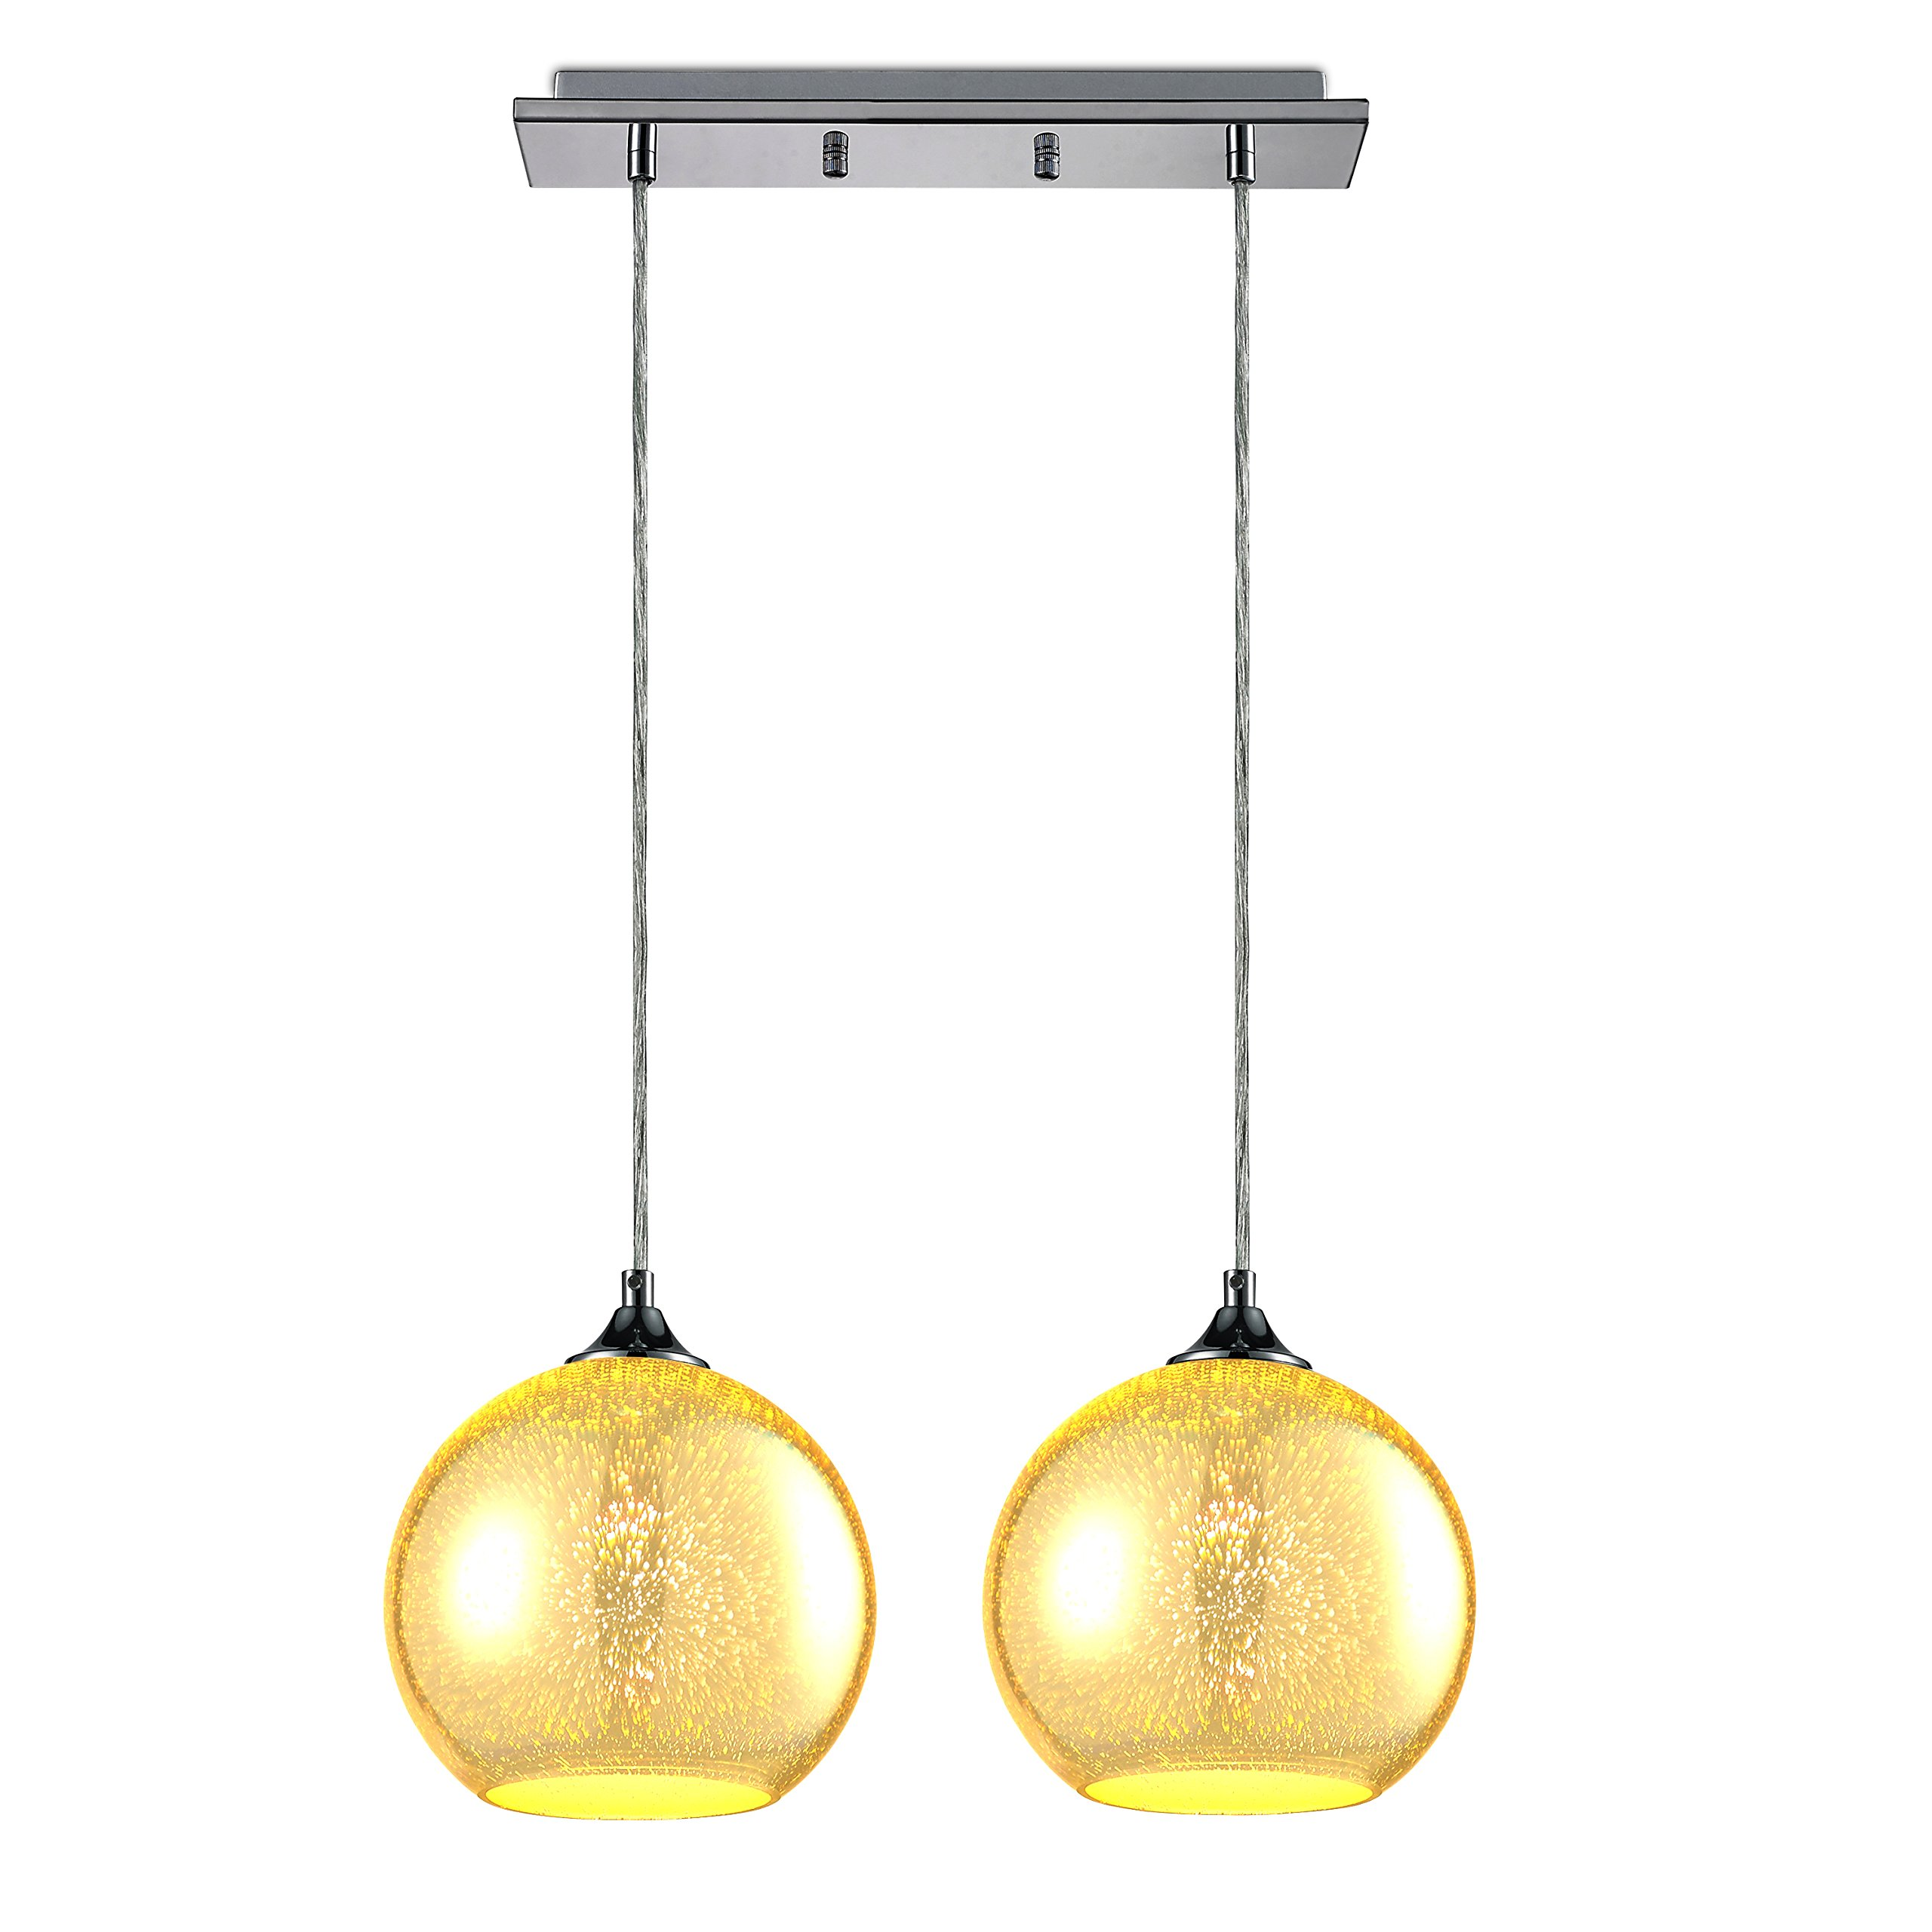 "SereneLife Home Lighting Fixture - Dual Pendant Hanging Lamp Ceiling Light with 2 7.87"" Circular Sphere Shaped Dome Globes, Sculpted Glass Accent, Adjustable Length and Screw-in Bulb Socket (SLLMP22) by SereneLife (Image #1)"